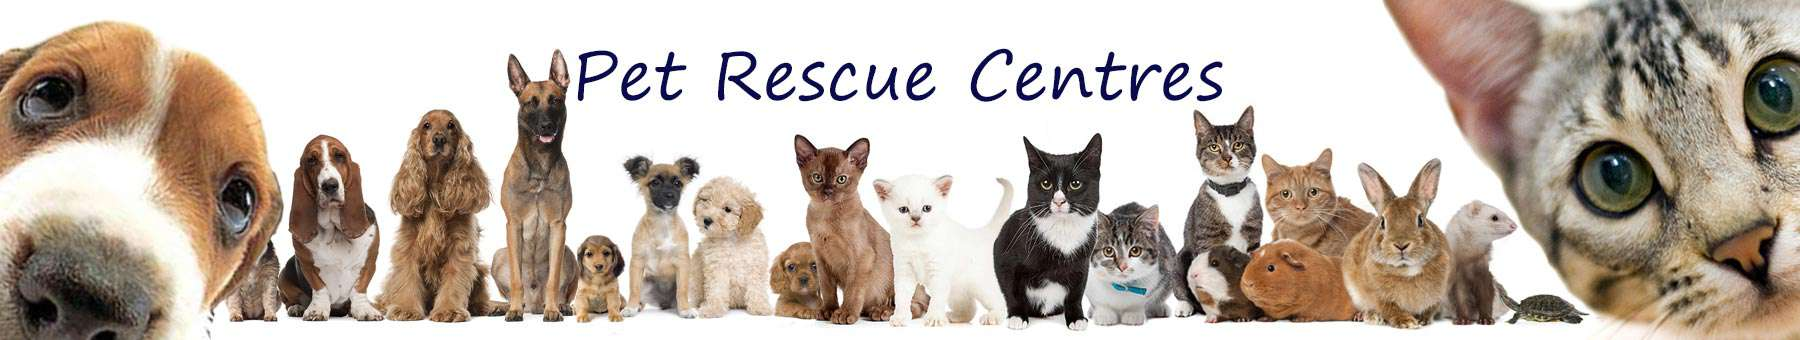 county archive of animal rescue and rehoming organisations